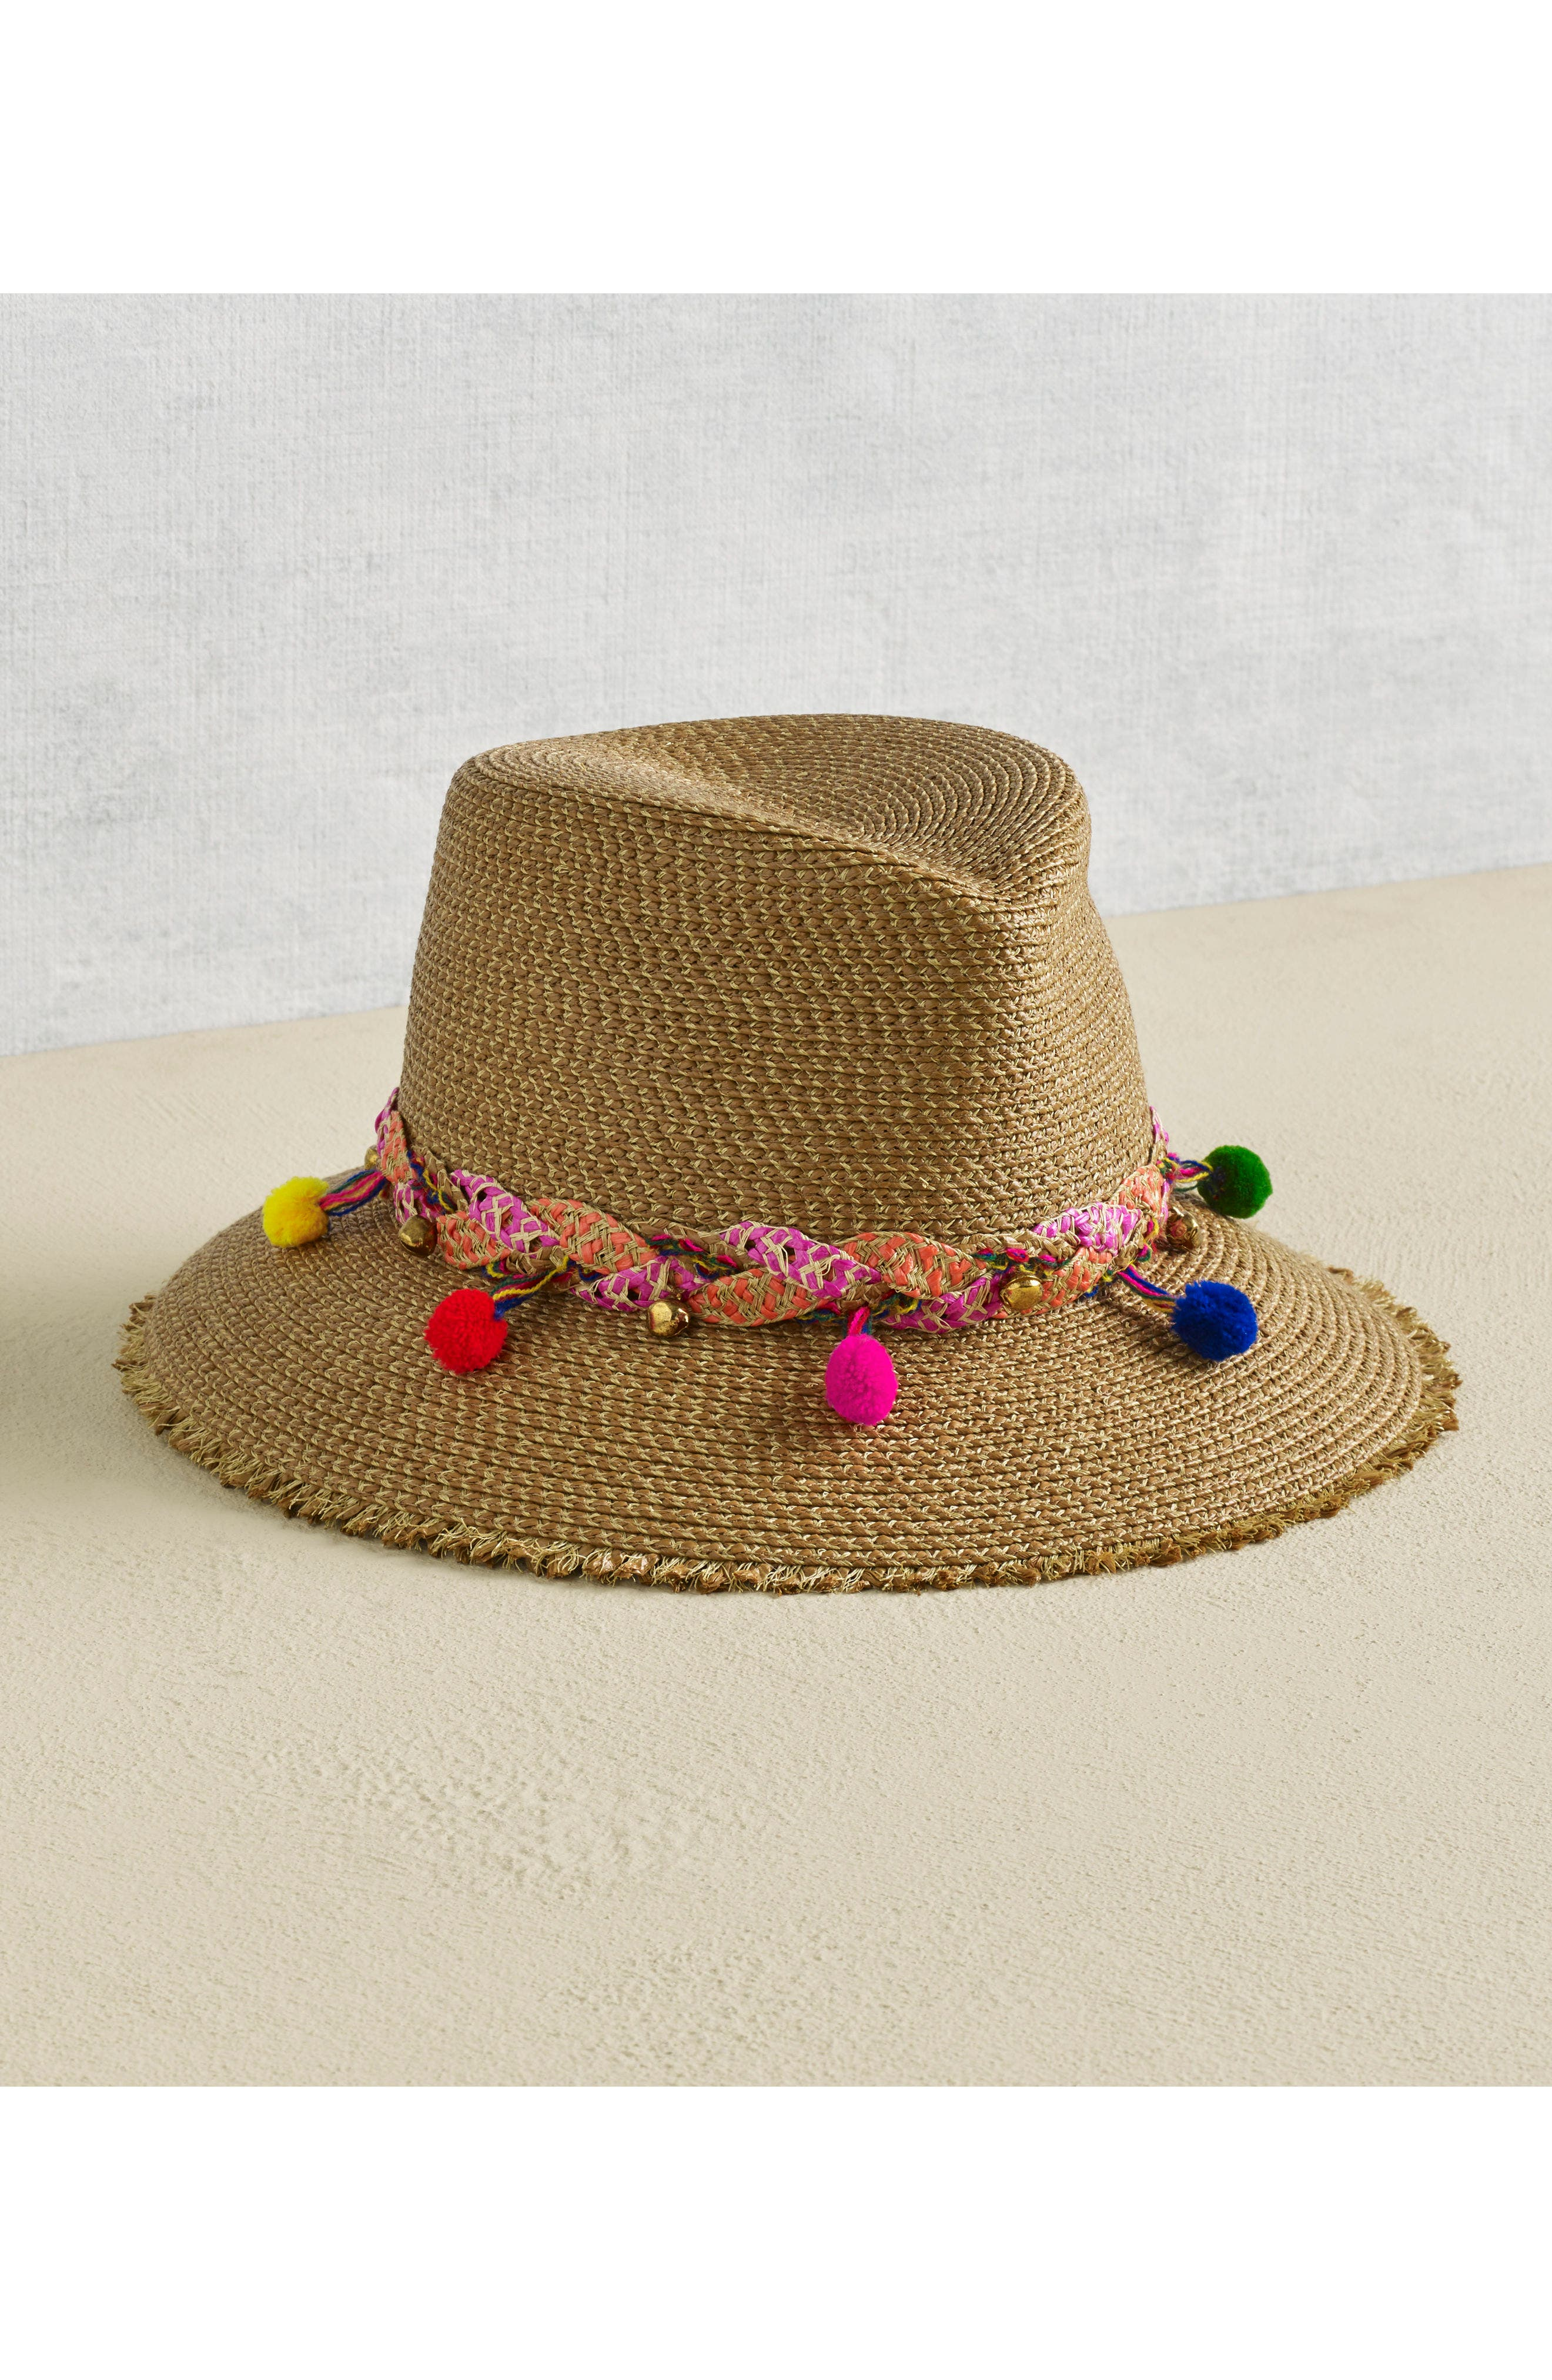 Corfu Packable Squishee<sup>®</sup> Straw Hat,                             Alternate thumbnail 3, color,                             NATURAL MIX